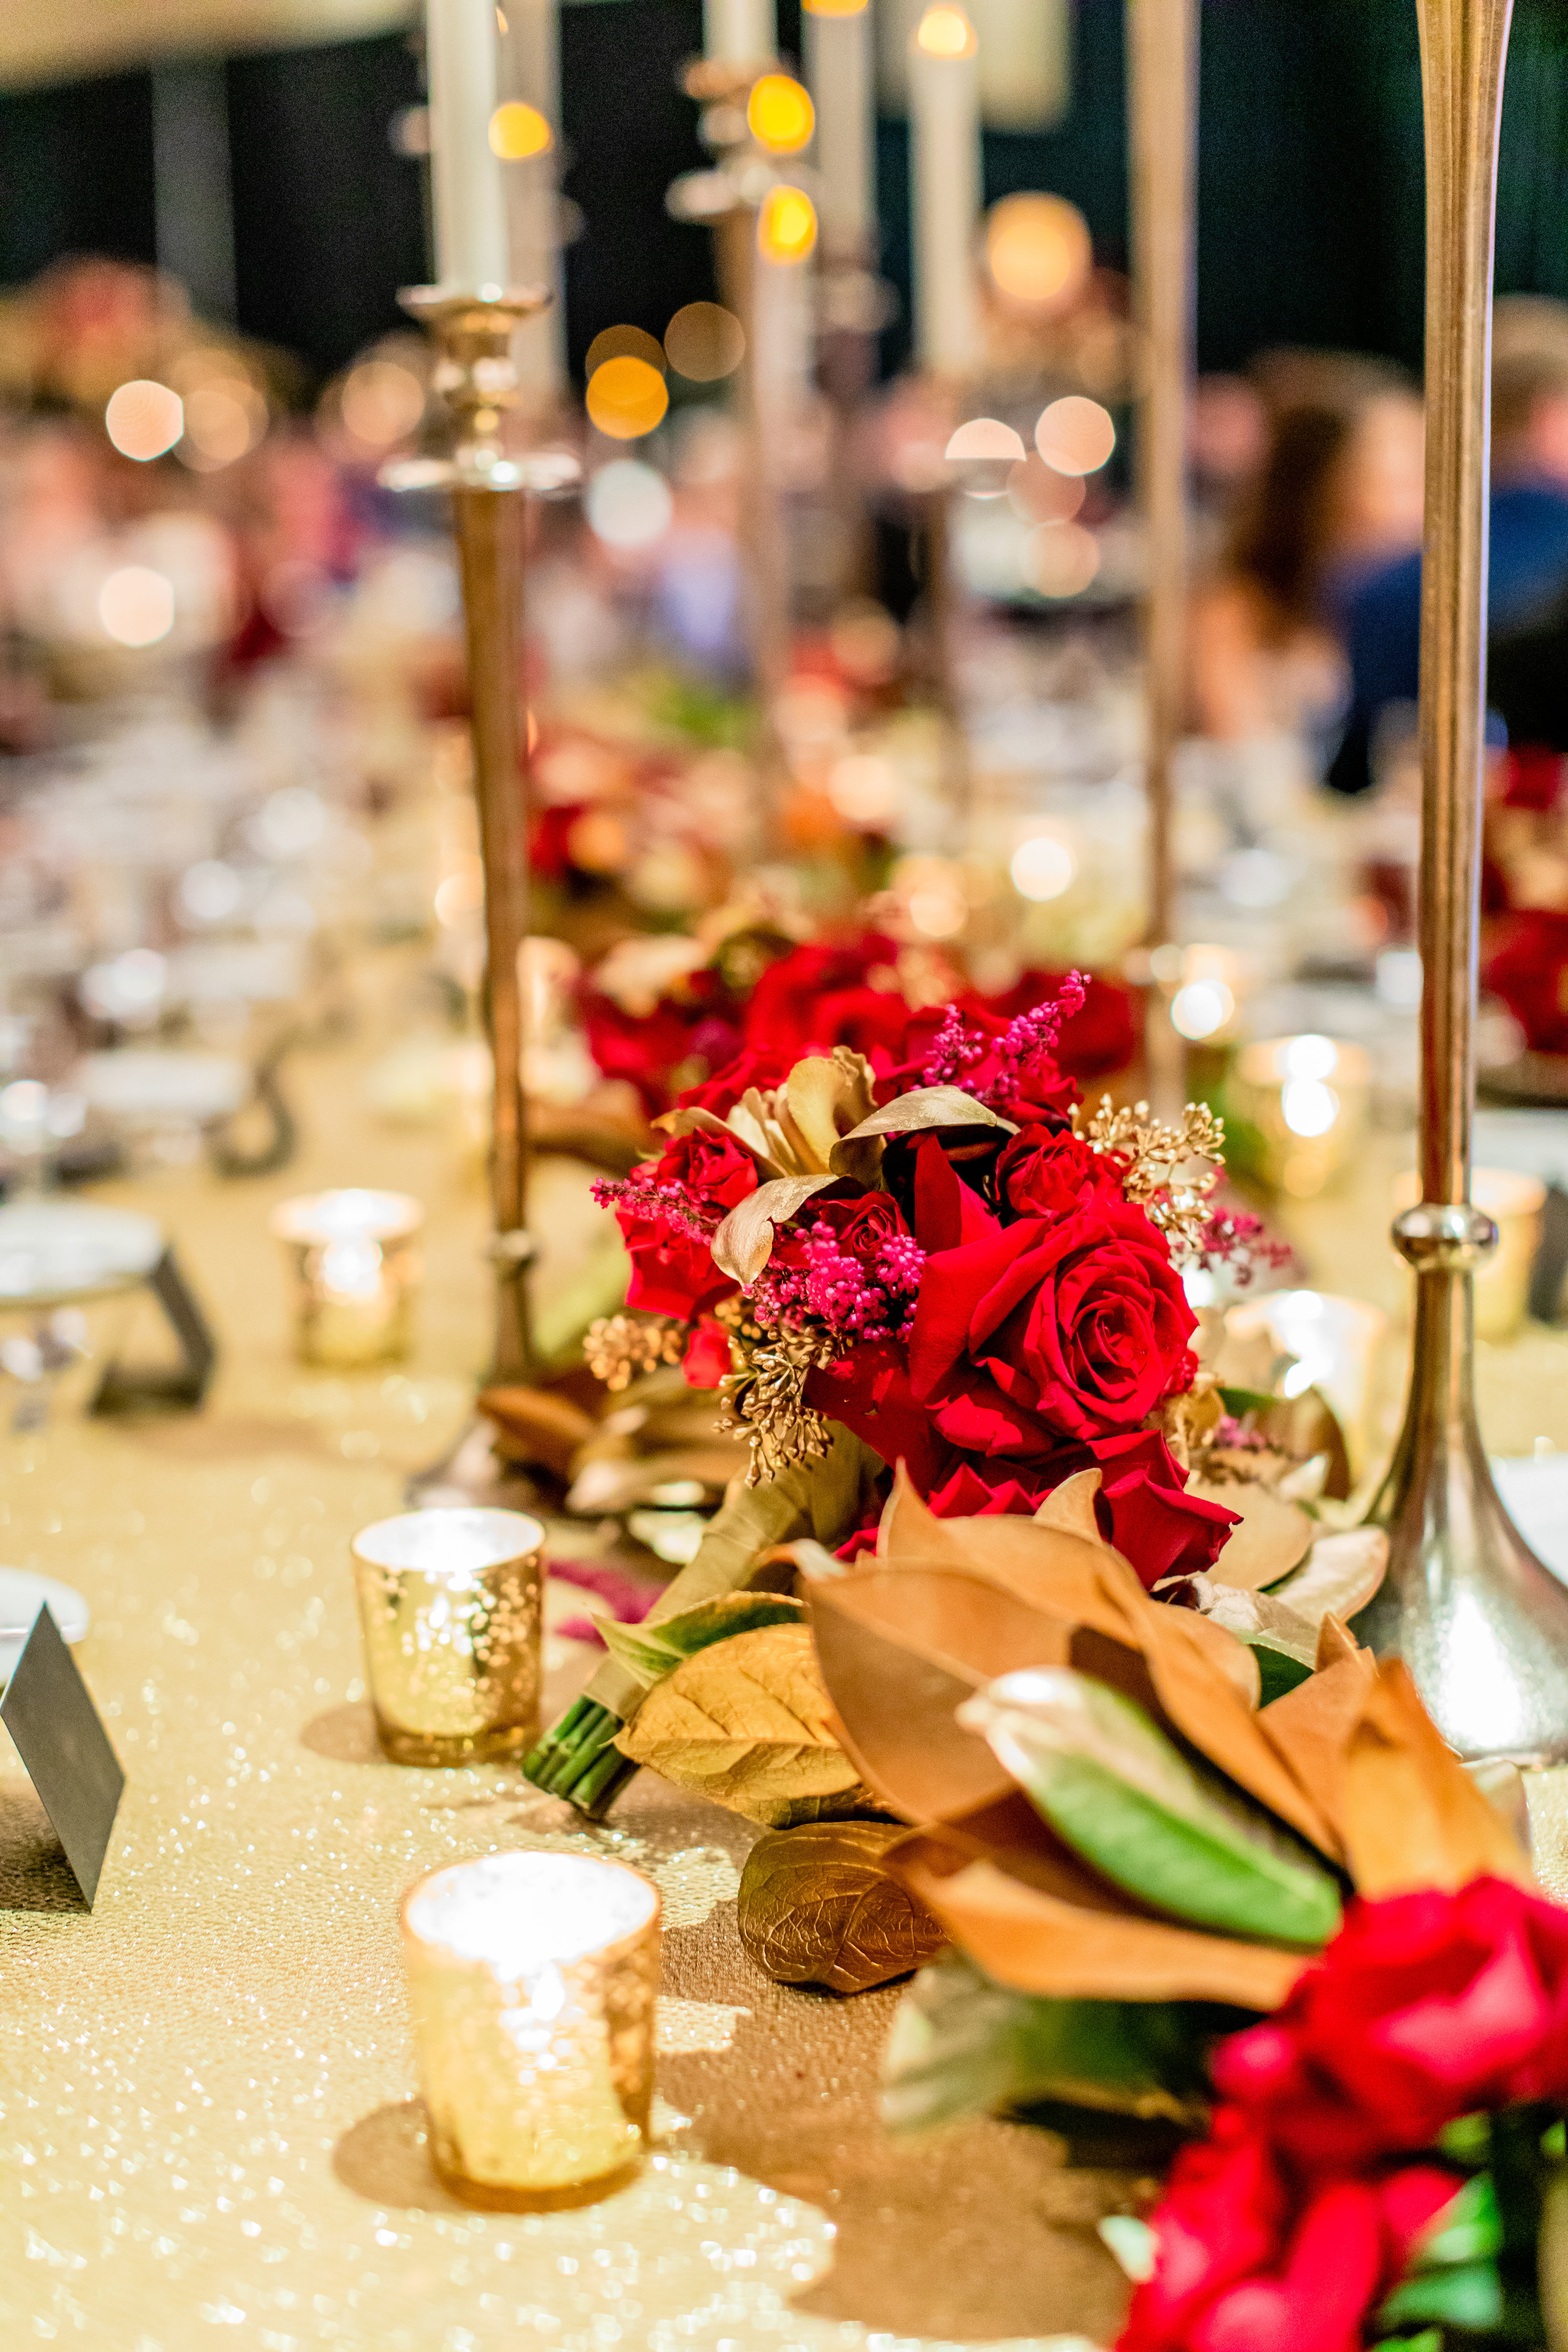 Ali_Louisville_Wedding_Emily_Lester_Photography_ReceptionDetails-157.jpg